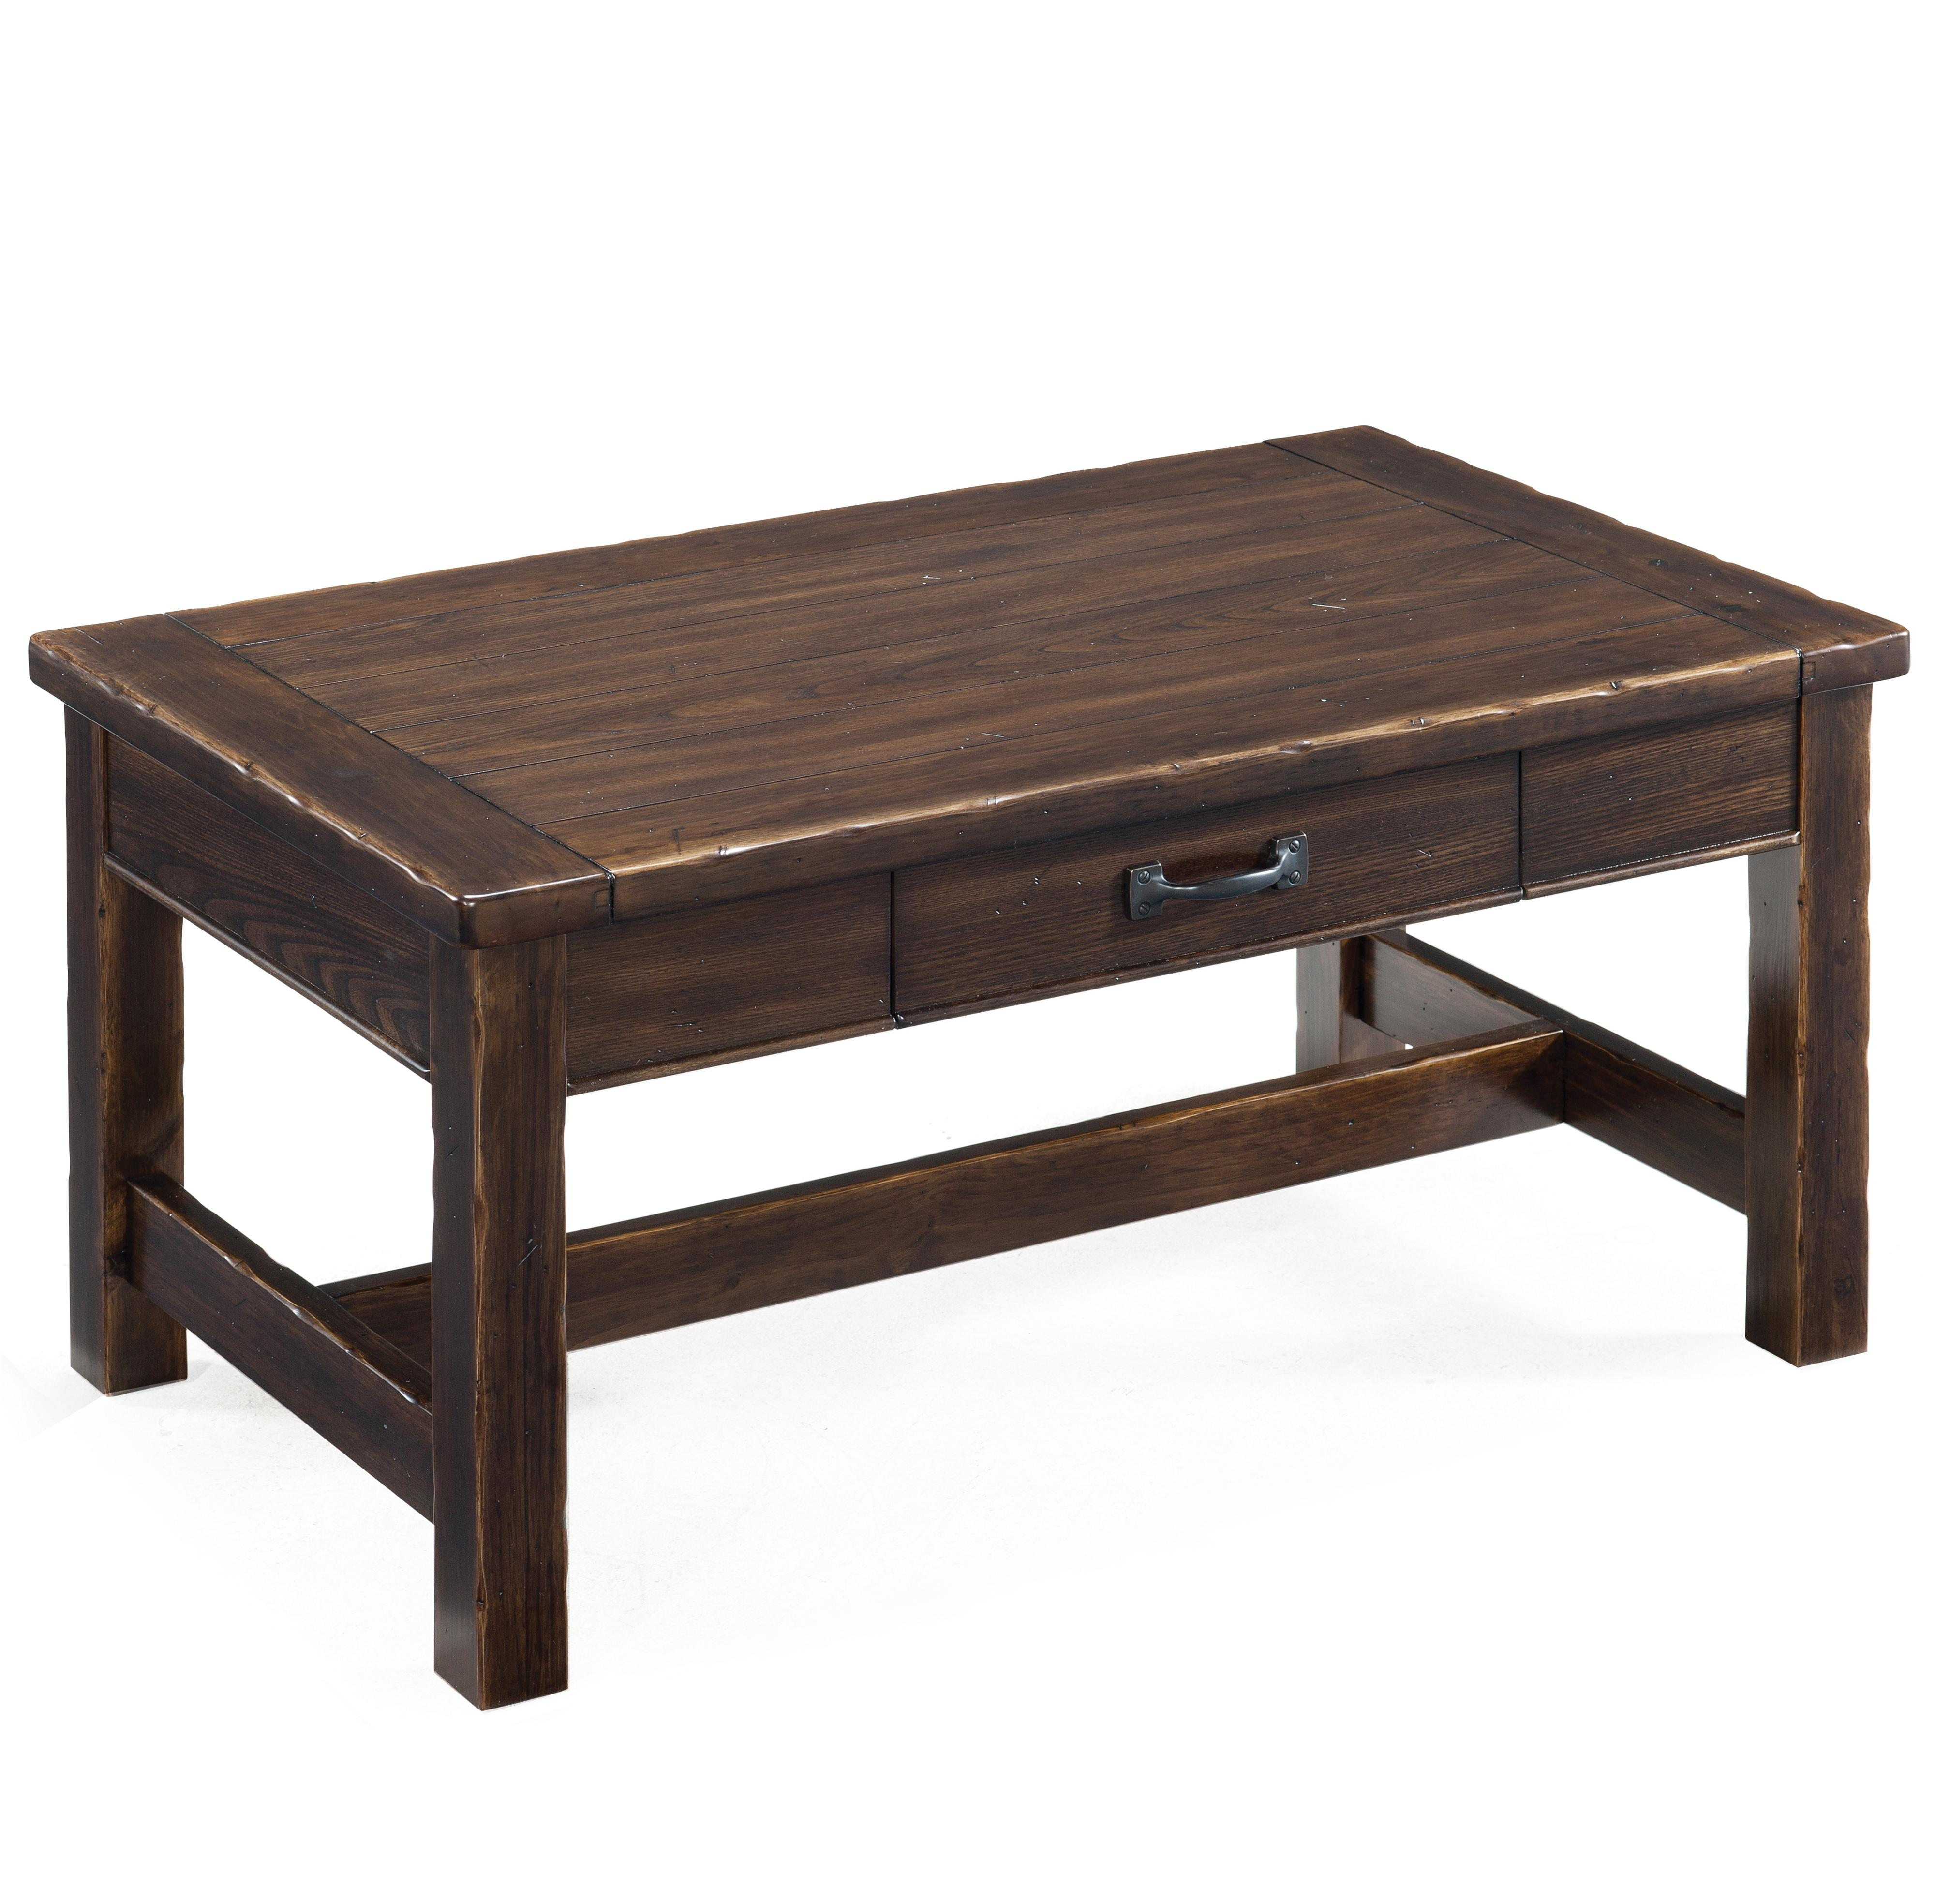 Magnussen Home Kinderton Rectangular Cocktail Table - Item Number: T2398-43